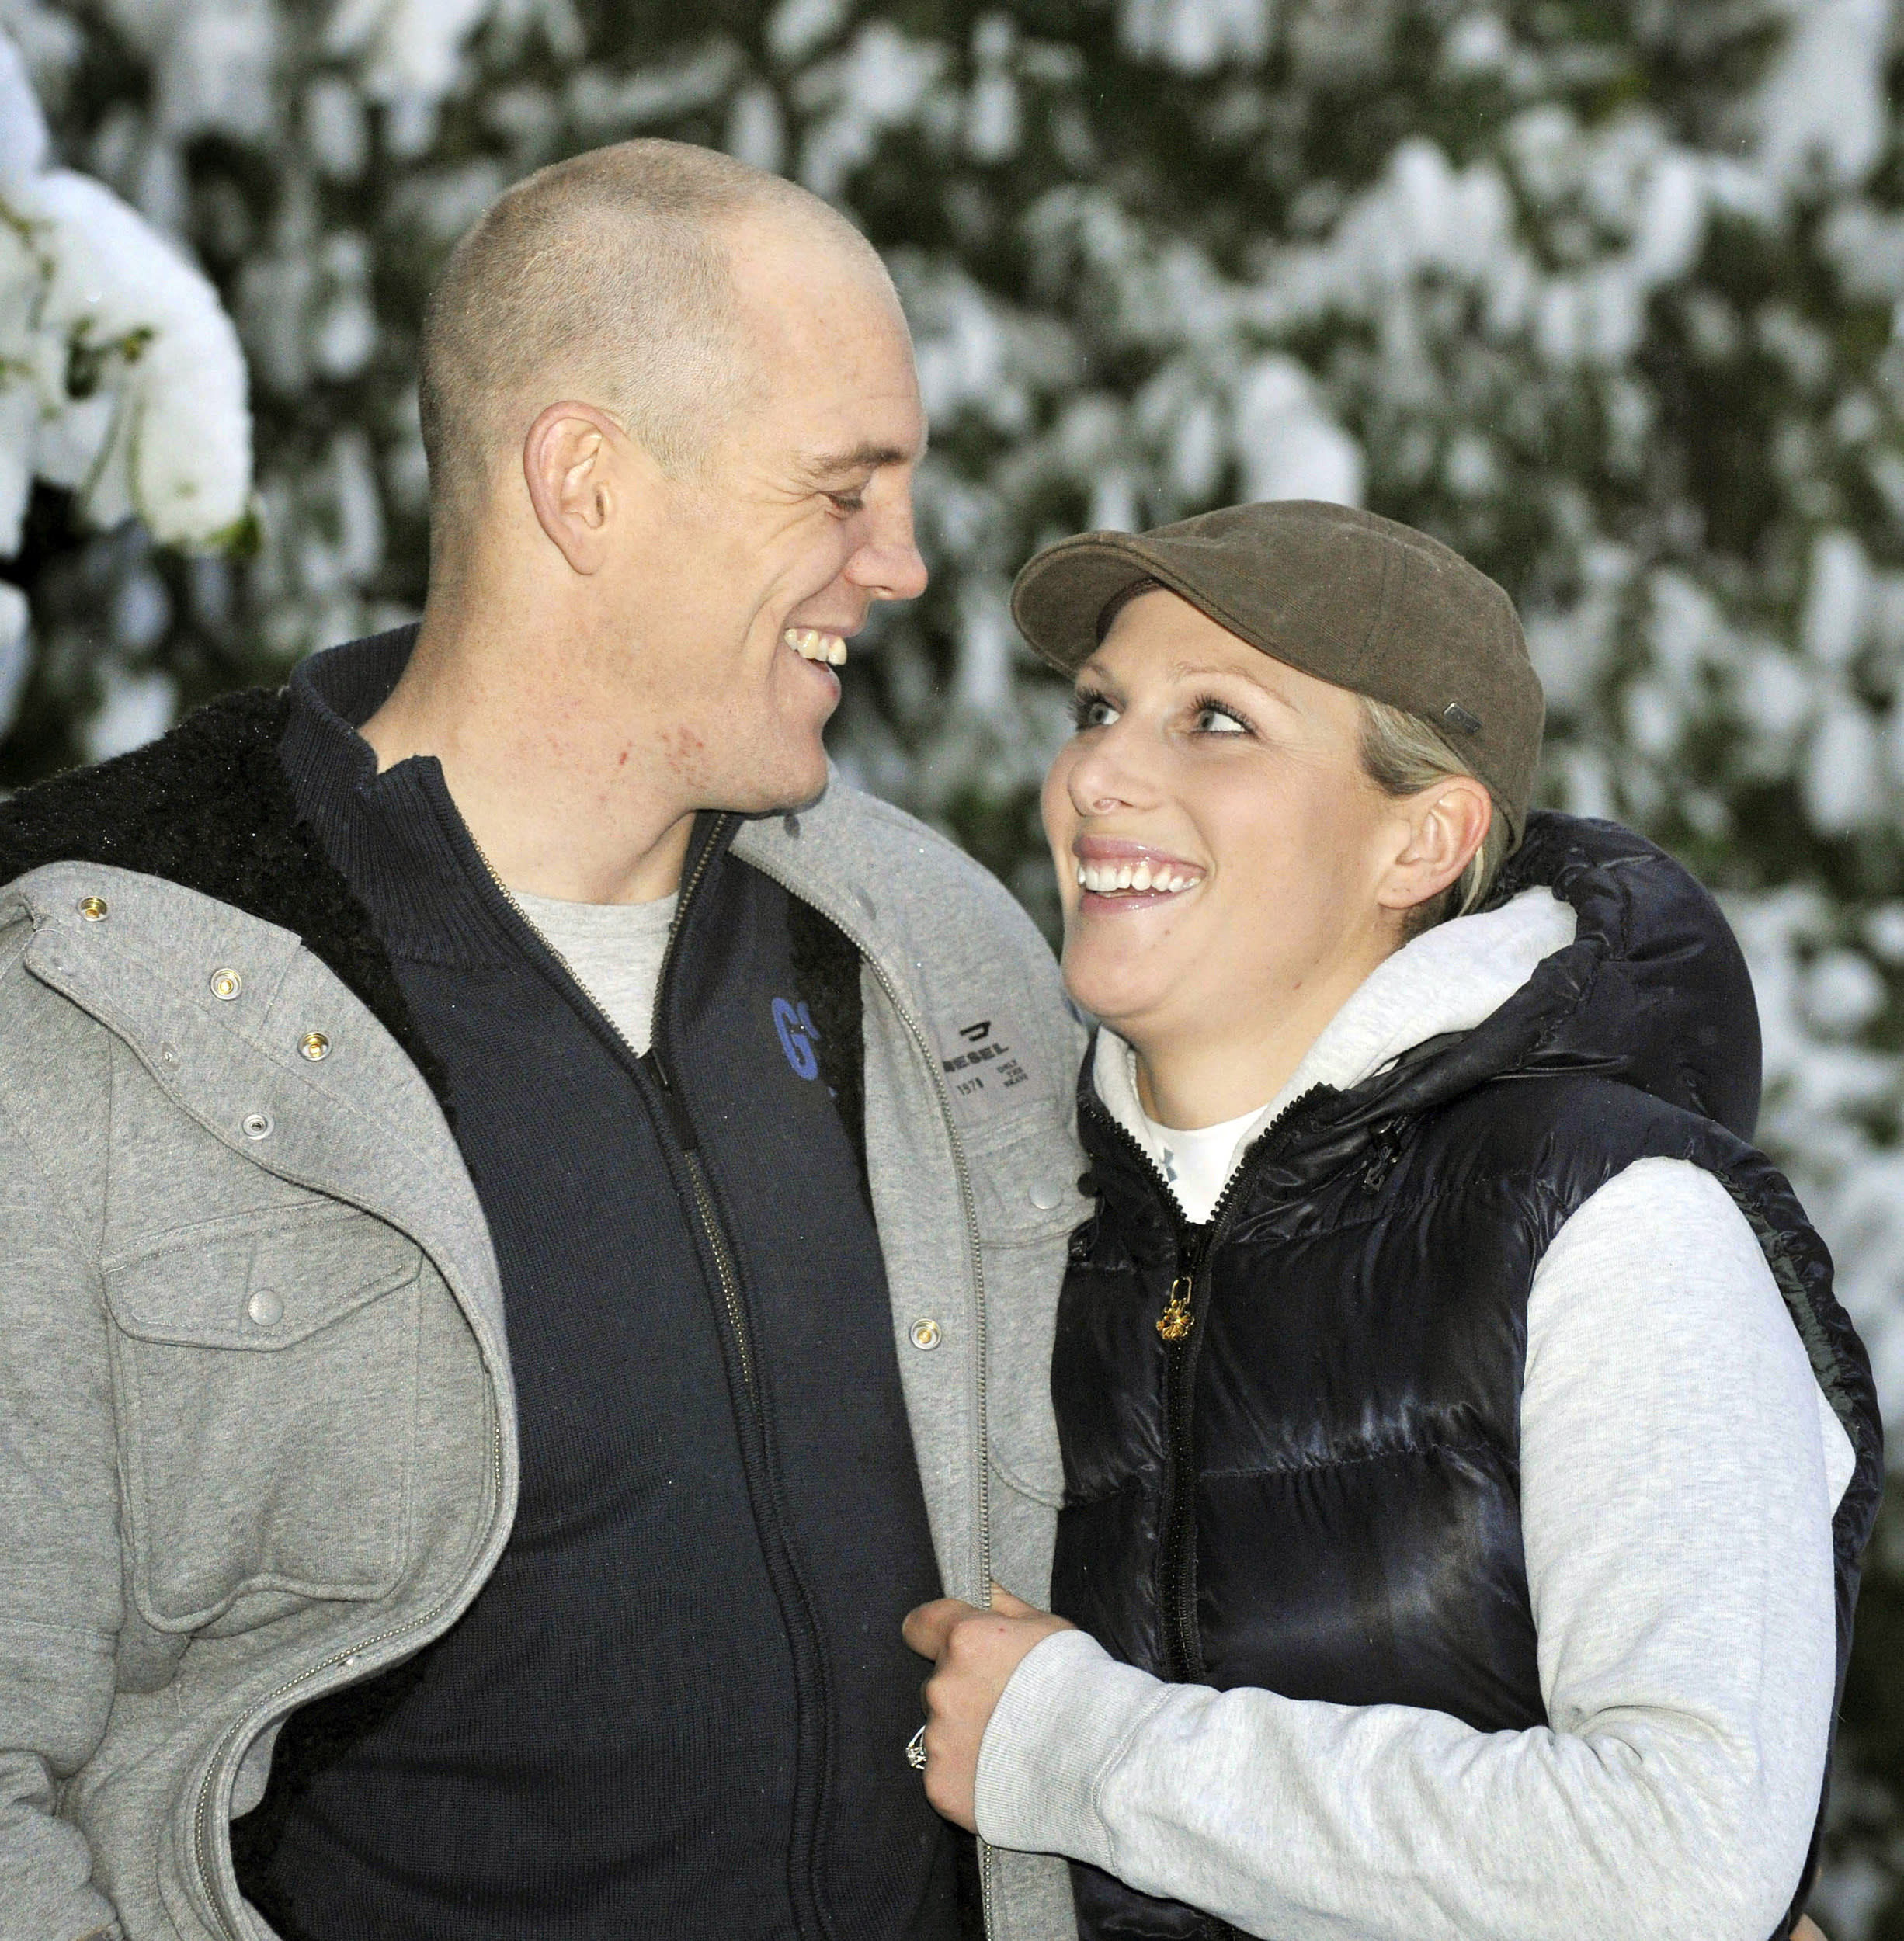 Zara Phillips and her fiance Mike Tindall pose for photographs at their home in Gloucestershire, south-west England December 21, 2010. Phillips, the granddaughter of Britain's Queen Elizabeth, is to marry rugby player Tindall, the royal family said on Tuesday. REUTERS/Tim Ireland/Pool   (BRITAIN - Tags: ENTERTAINMENT ROYALS SPORT RUGBY IMAGES OF THE DAY)